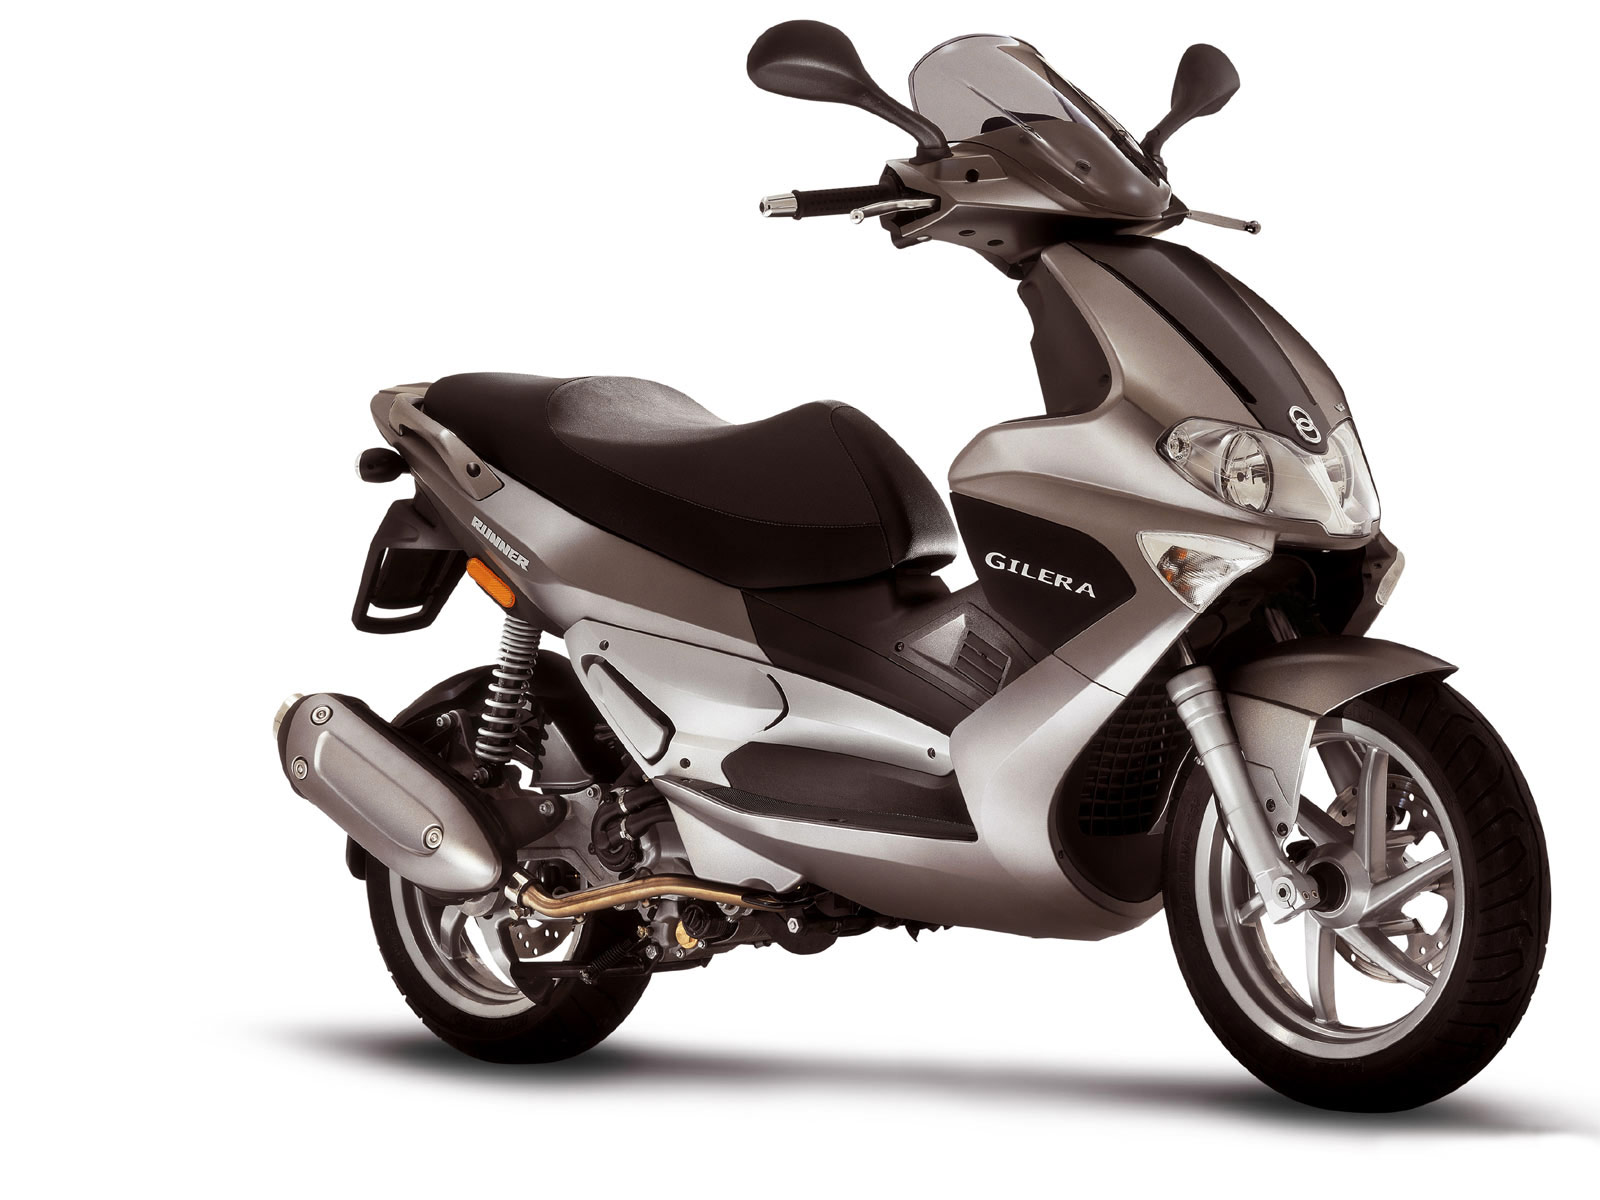 2006 gilera runner 125vx insurance info scooter pictures. Black Bedroom Furniture Sets. Home Design Ideas